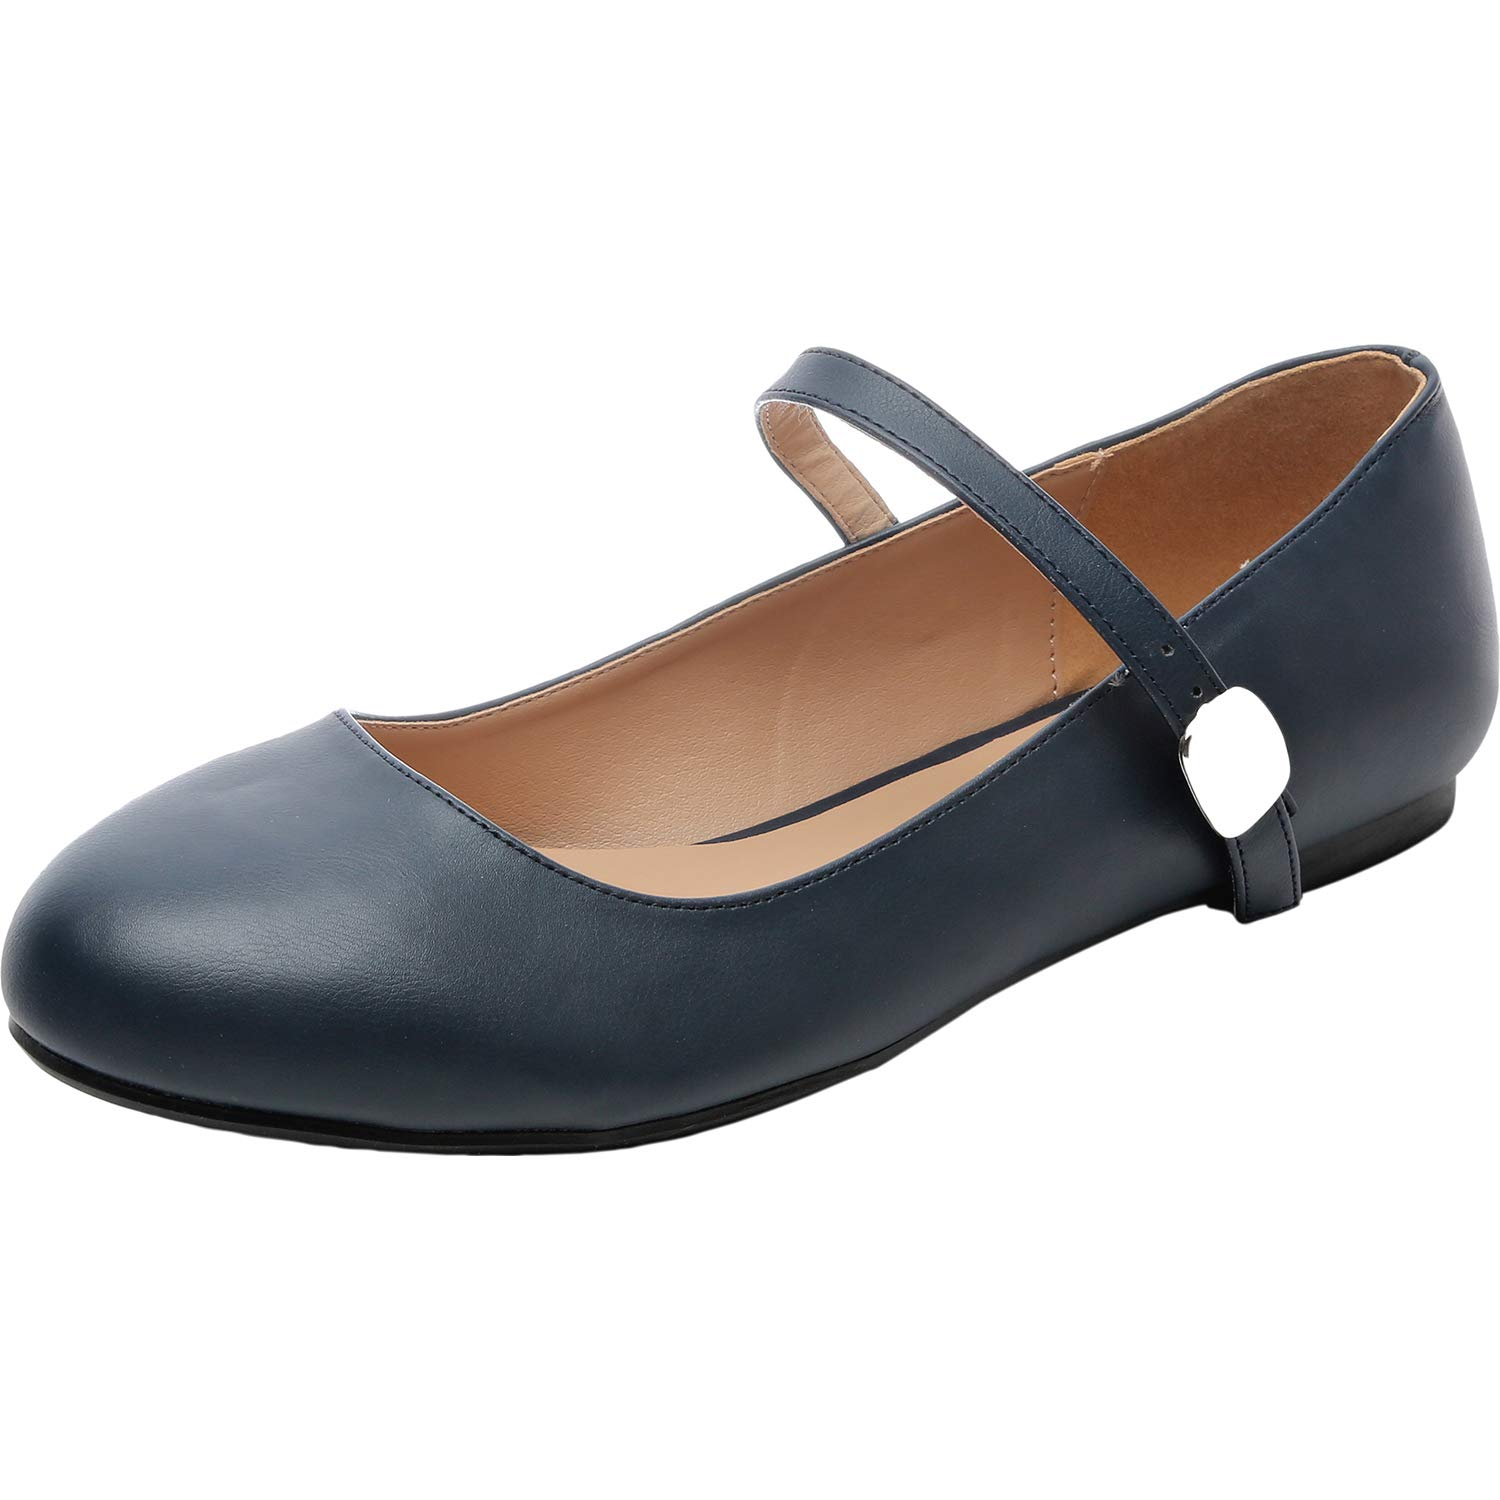 fd4c0b92a0d29 Luoika Women's Wide Width Flat Shoes - Comfortable Adjustable Buckle Strap  Mary Jane Round Toe Ballet Flats.